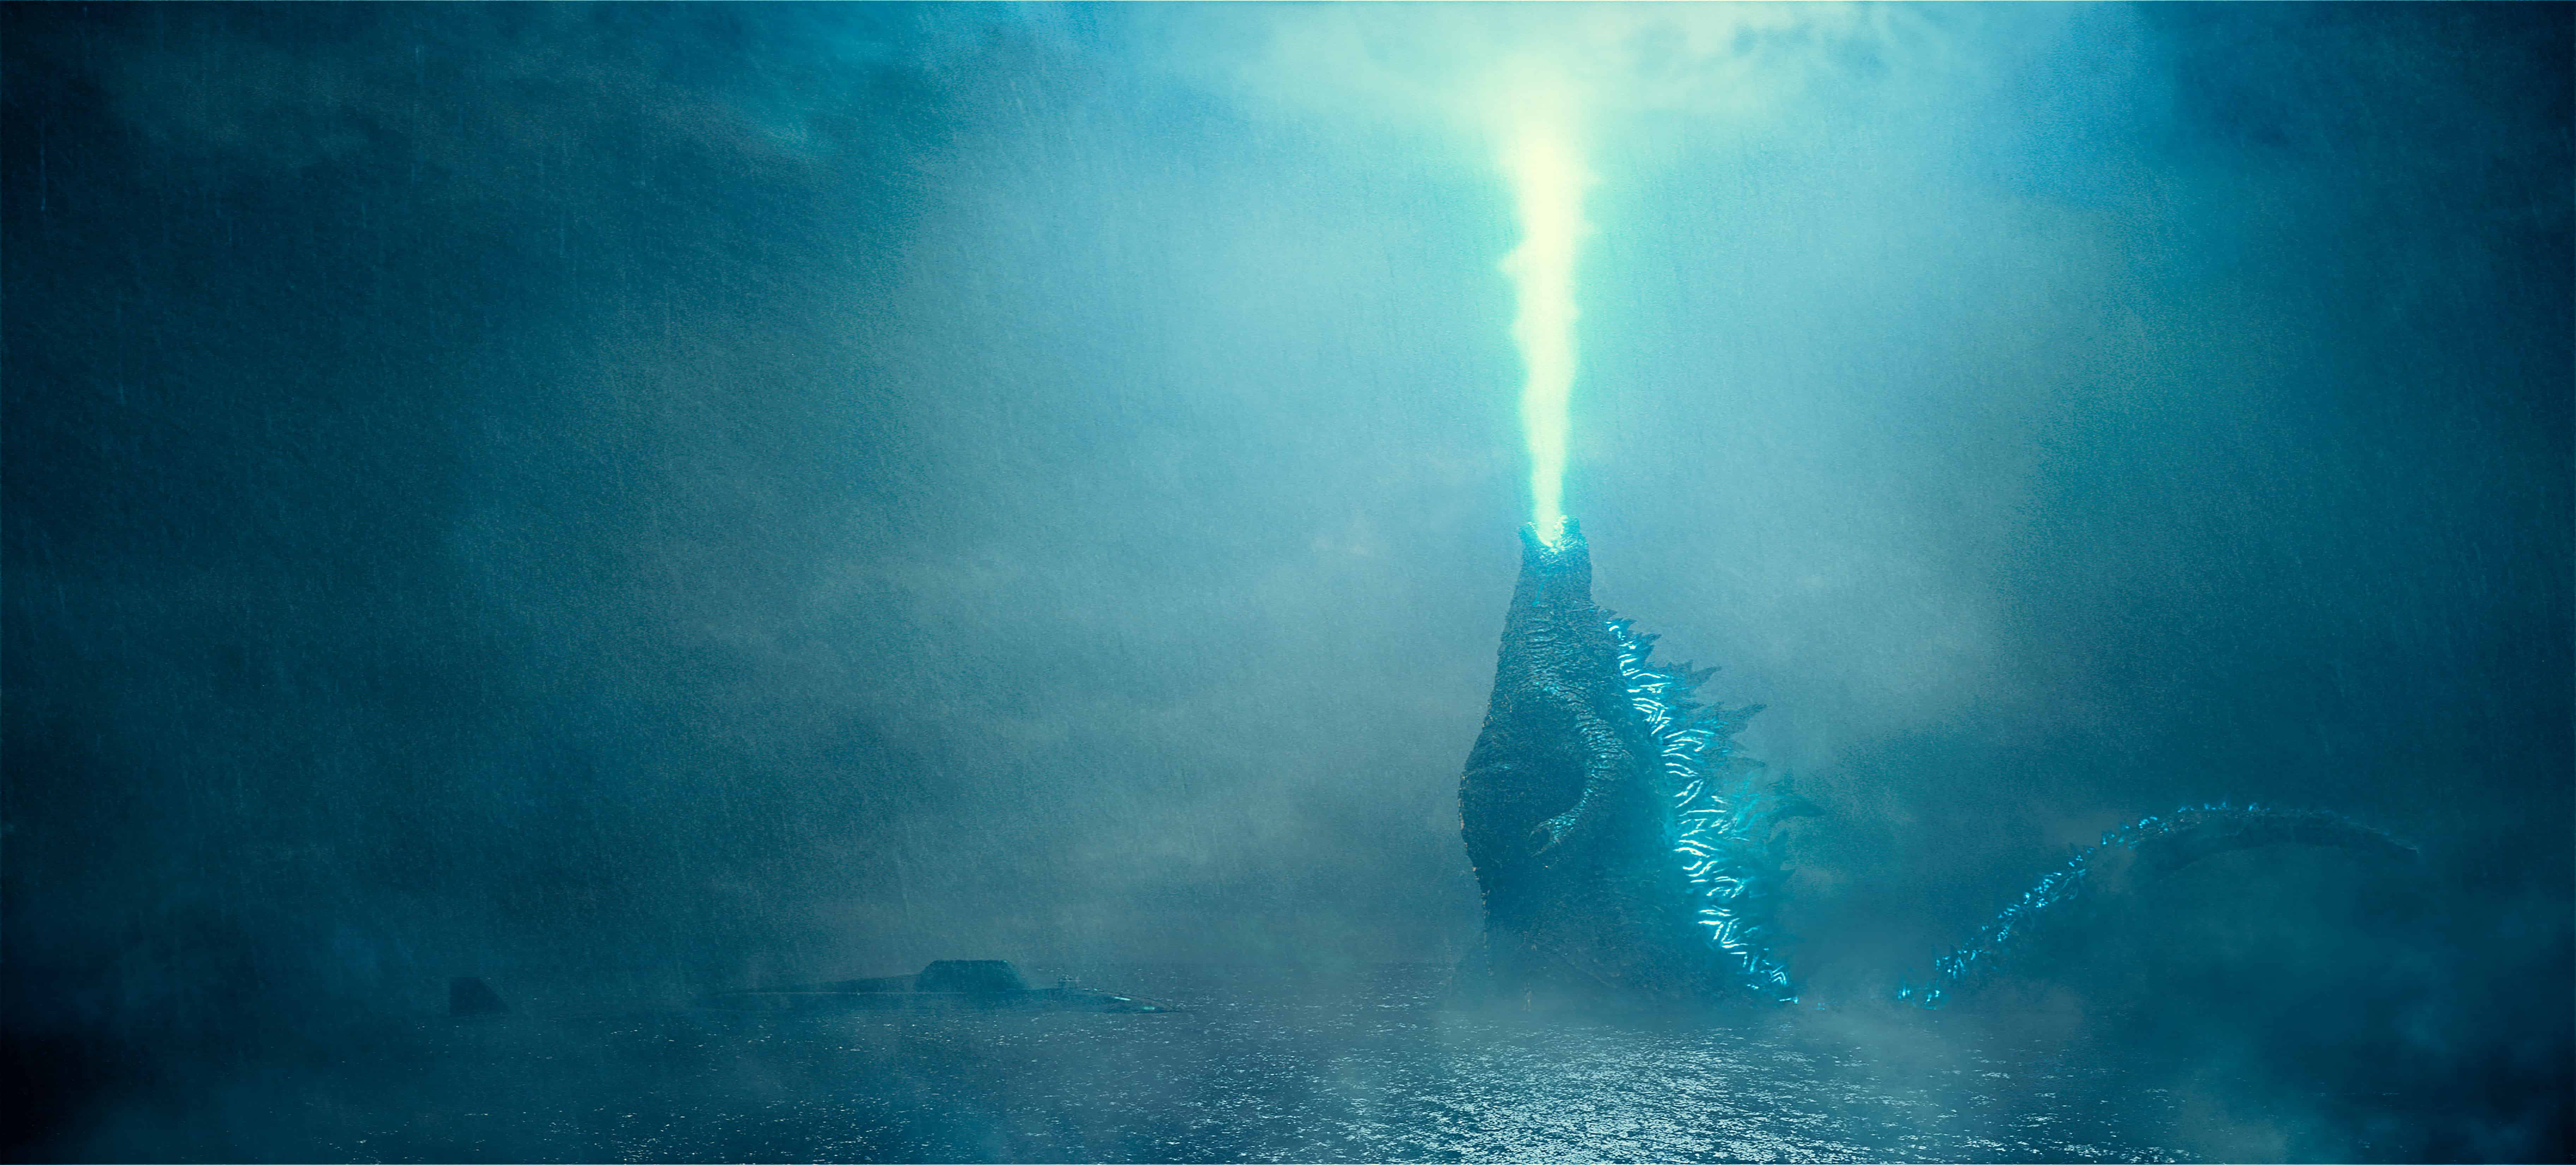 Godzilla II: King Of The Monsters Review